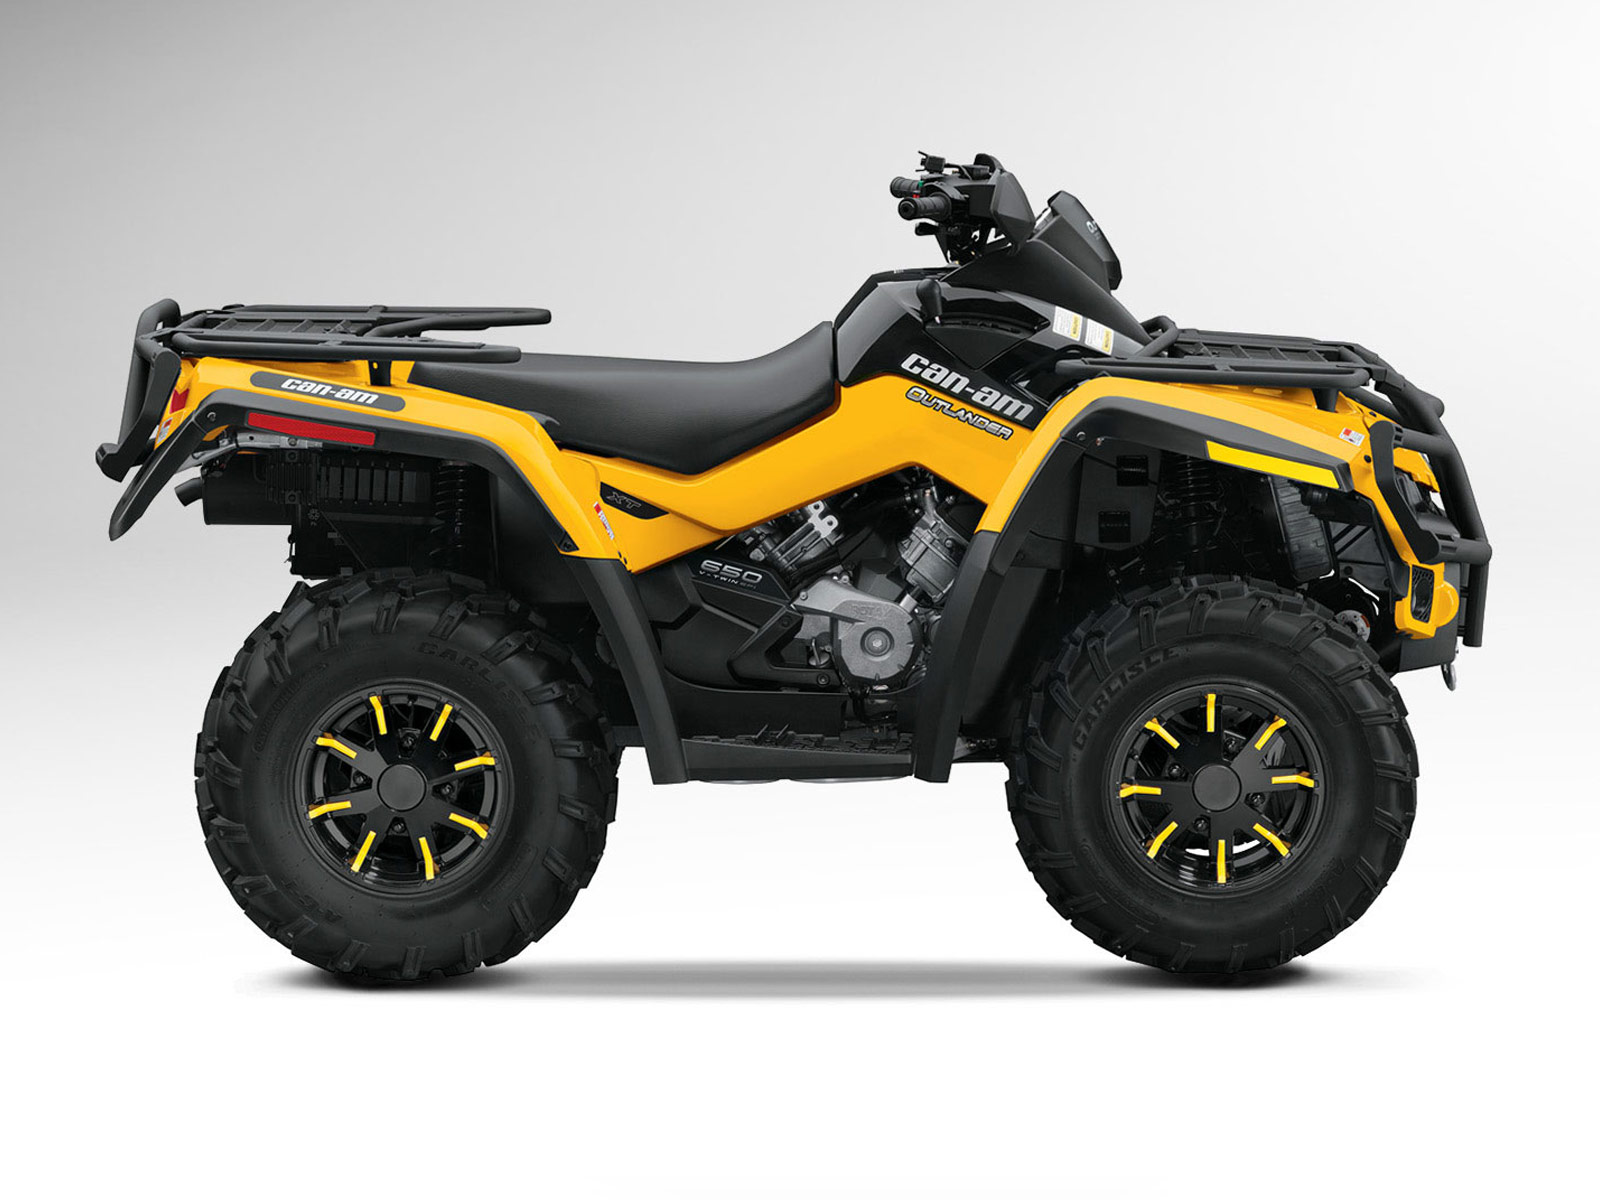 2012 Can-Am Outlander 650XT ATV Insurance Information